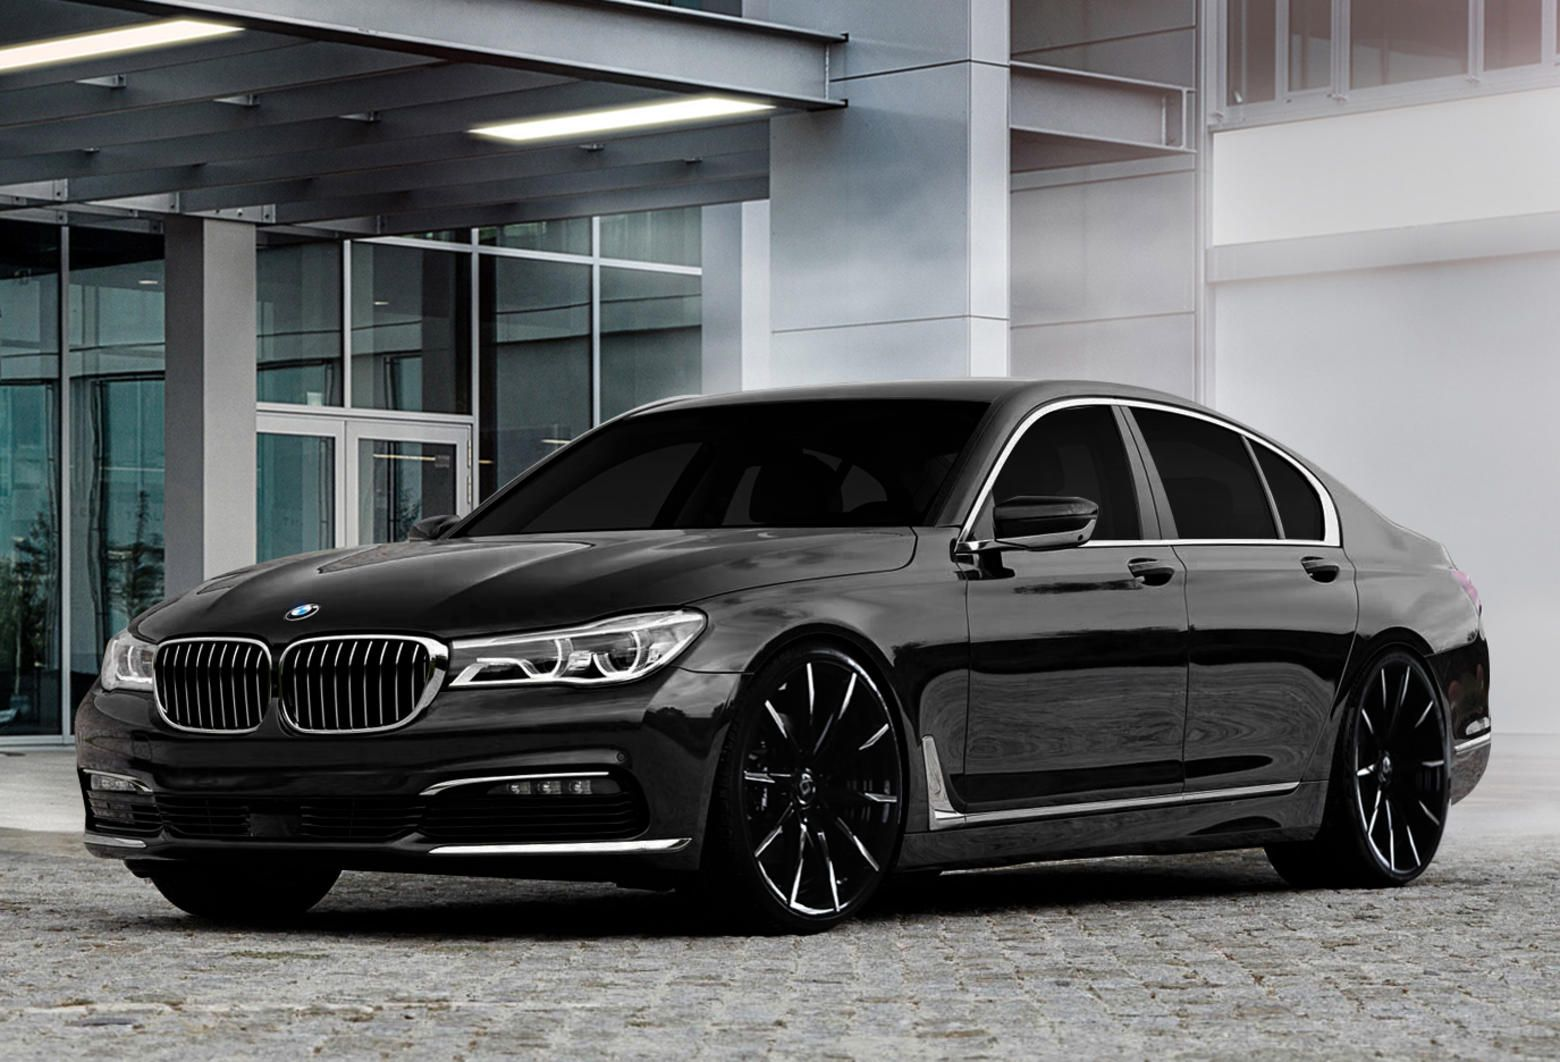 Bmw 7 Series Best Luxury Cars: Lexani Wheels, The Leader In Custom Luxury Wheels. 2016